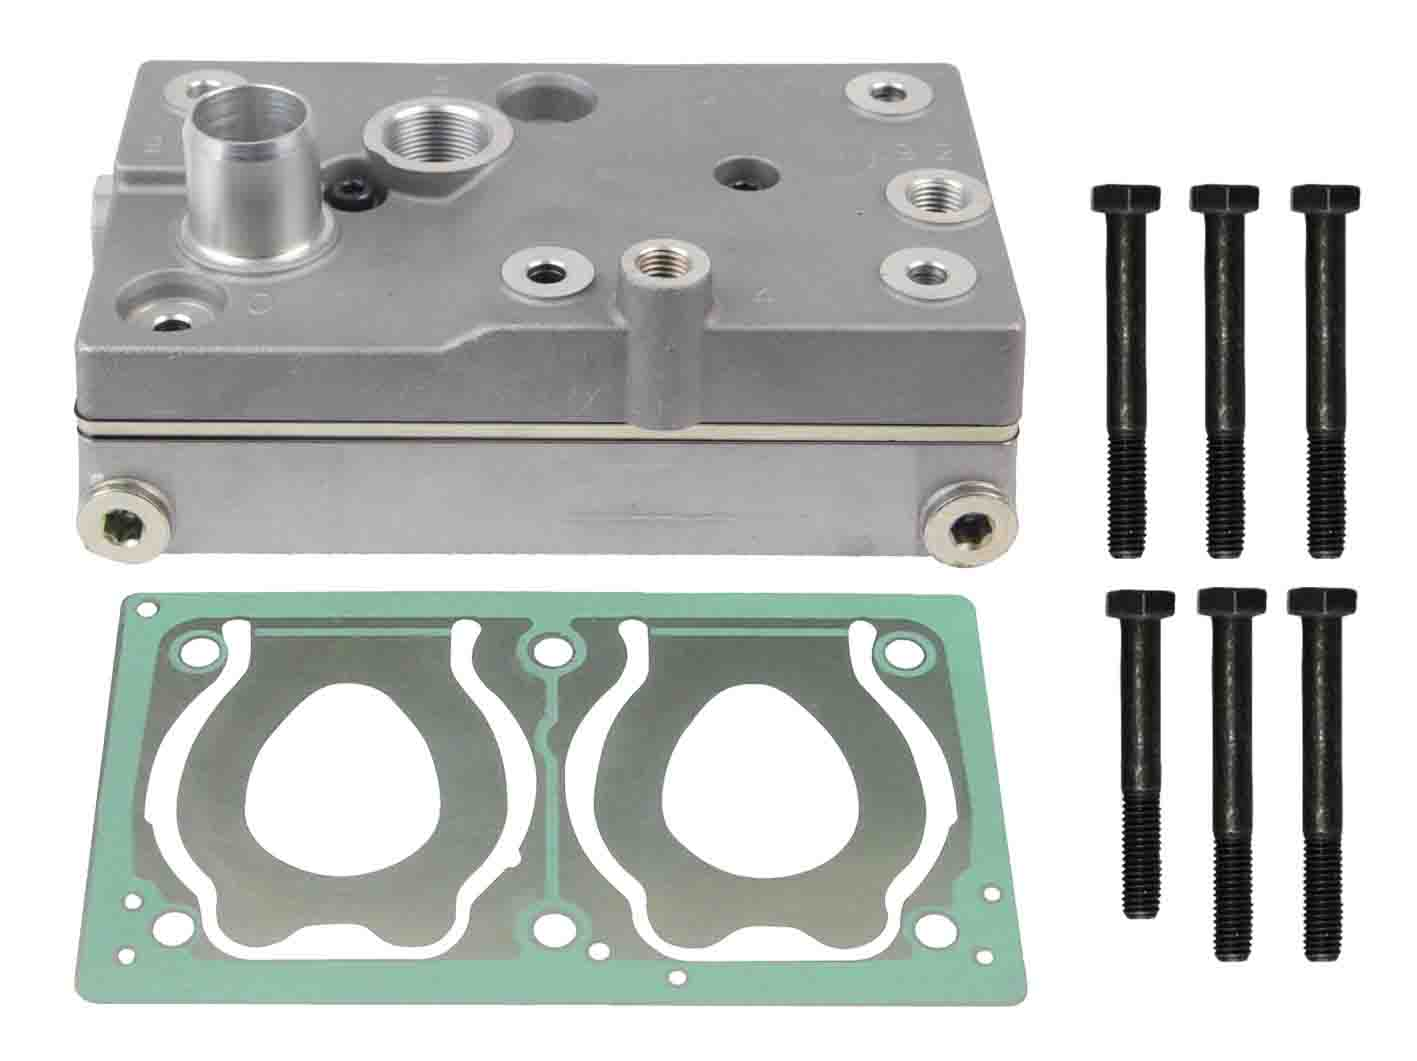 MERCEDES CYLINDER HEAD WIHT PLATE KIT ARC-EXP.304700